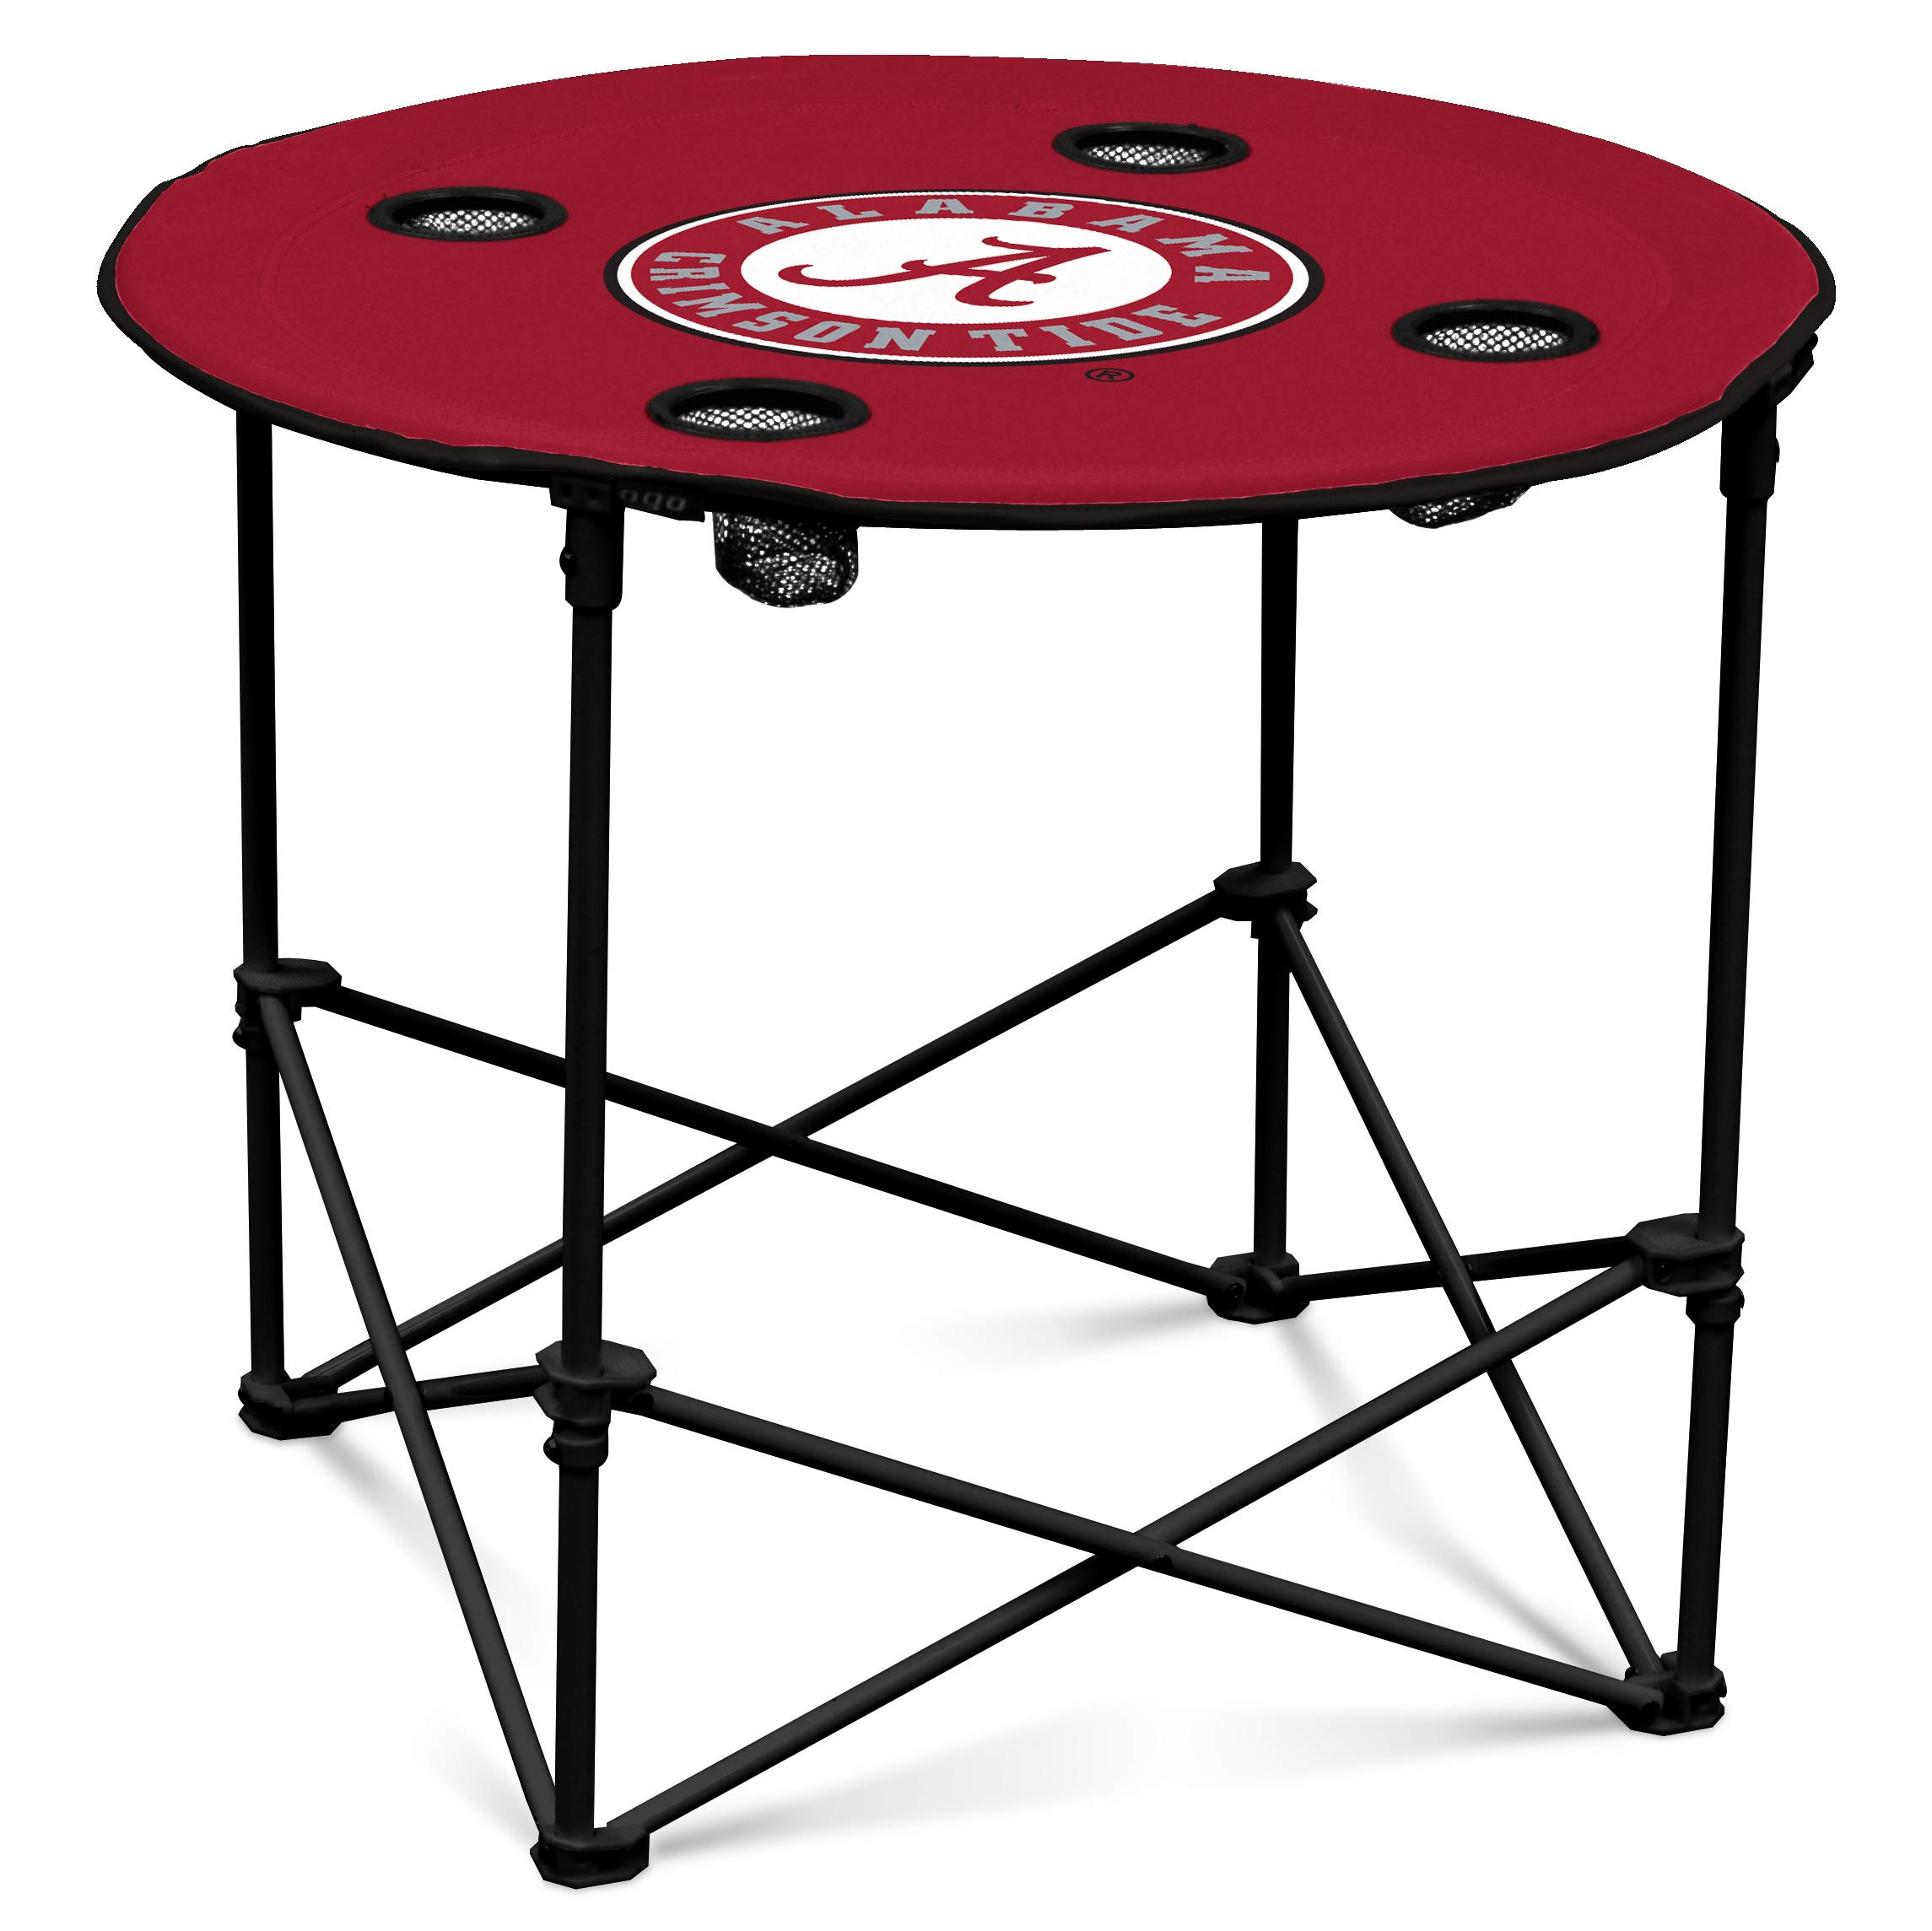 Alabama Crimson Tide Collapsible Round Table with 4 Cup Holders and Carry Bag by Logo Brands